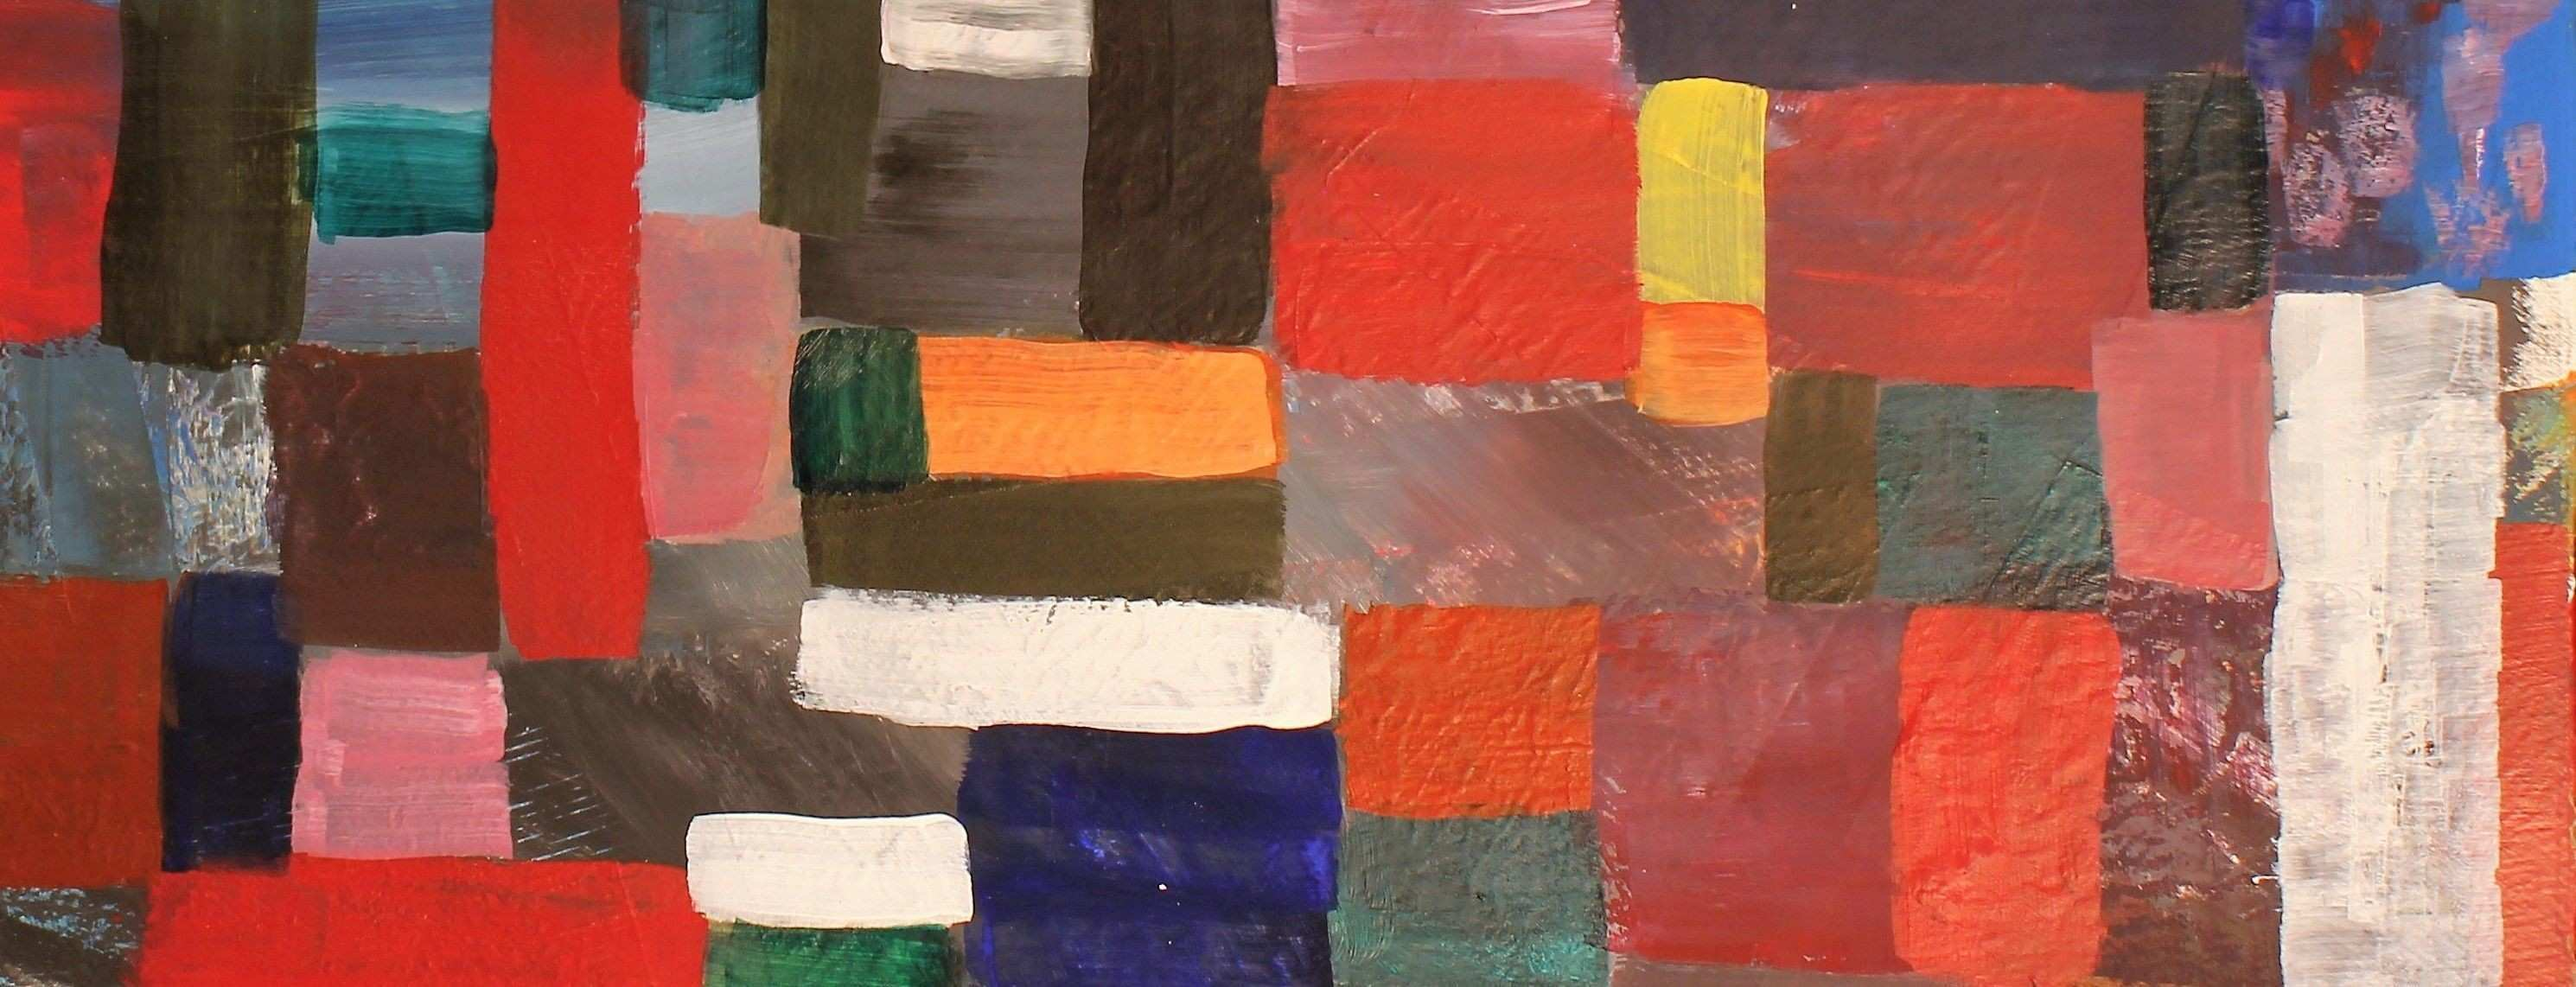 Find original abstract paintings and photographs by emerging and